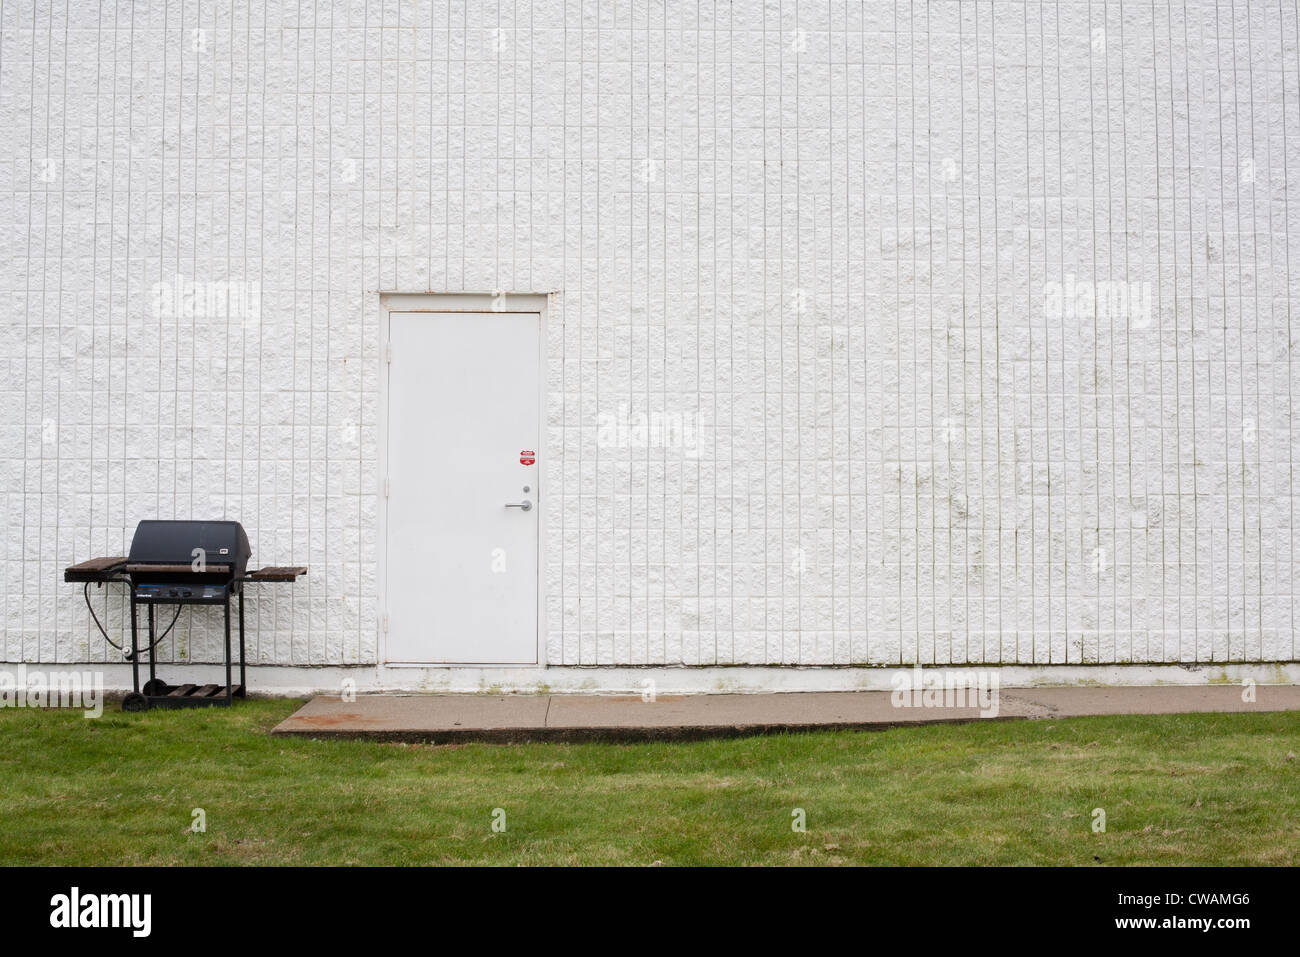 Barbecue and white building exterior - Stock Image